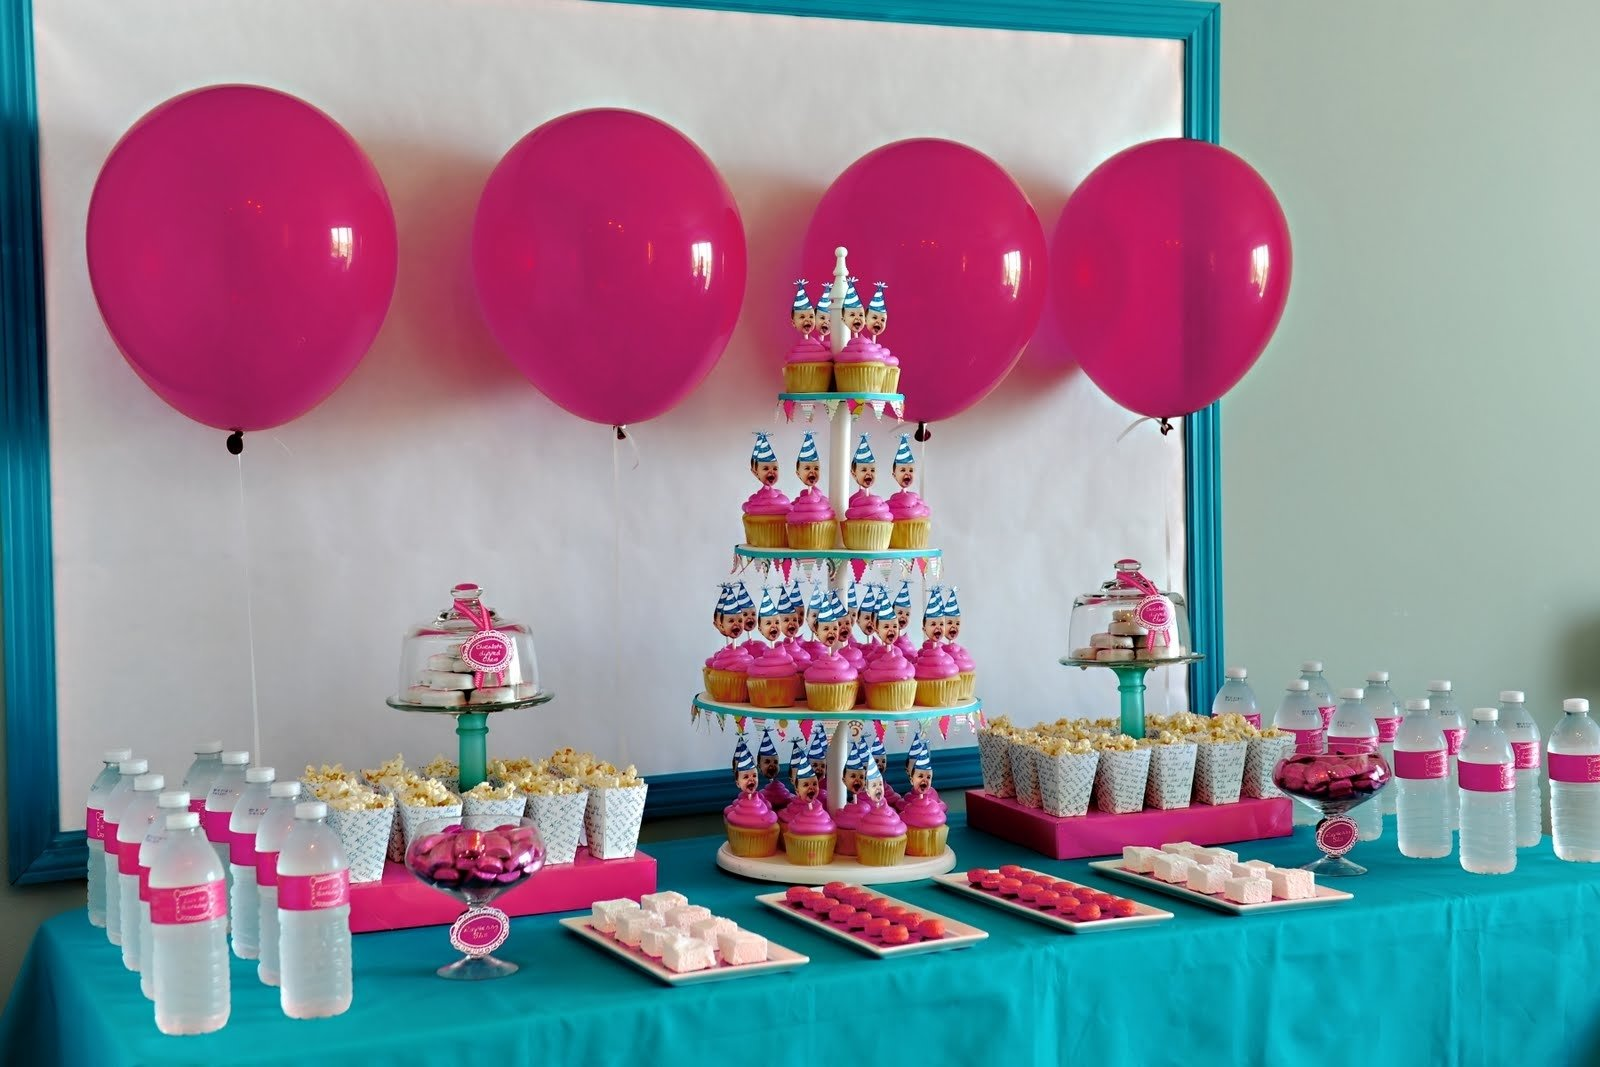 10 Unique Birthday Ideas For 2 Year Old Girl themes birthday 4 year old little girl birthday party ideas themes 2 2020